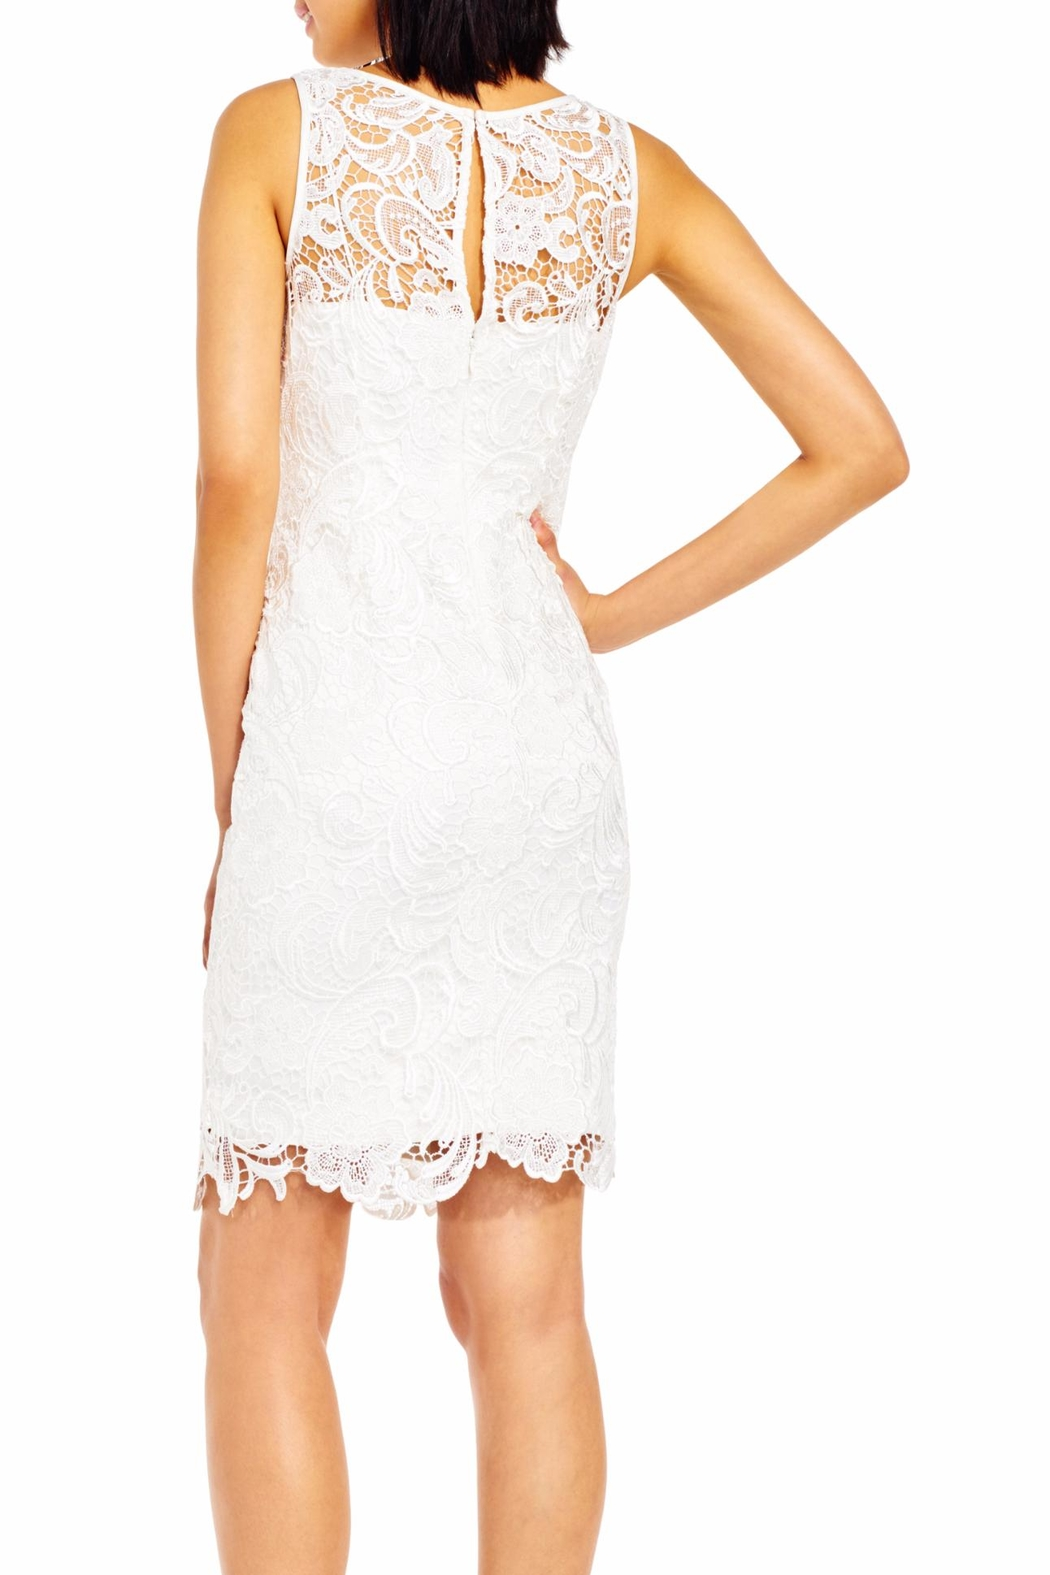 Adrianna Papell Ivory Dress - Front Full Image